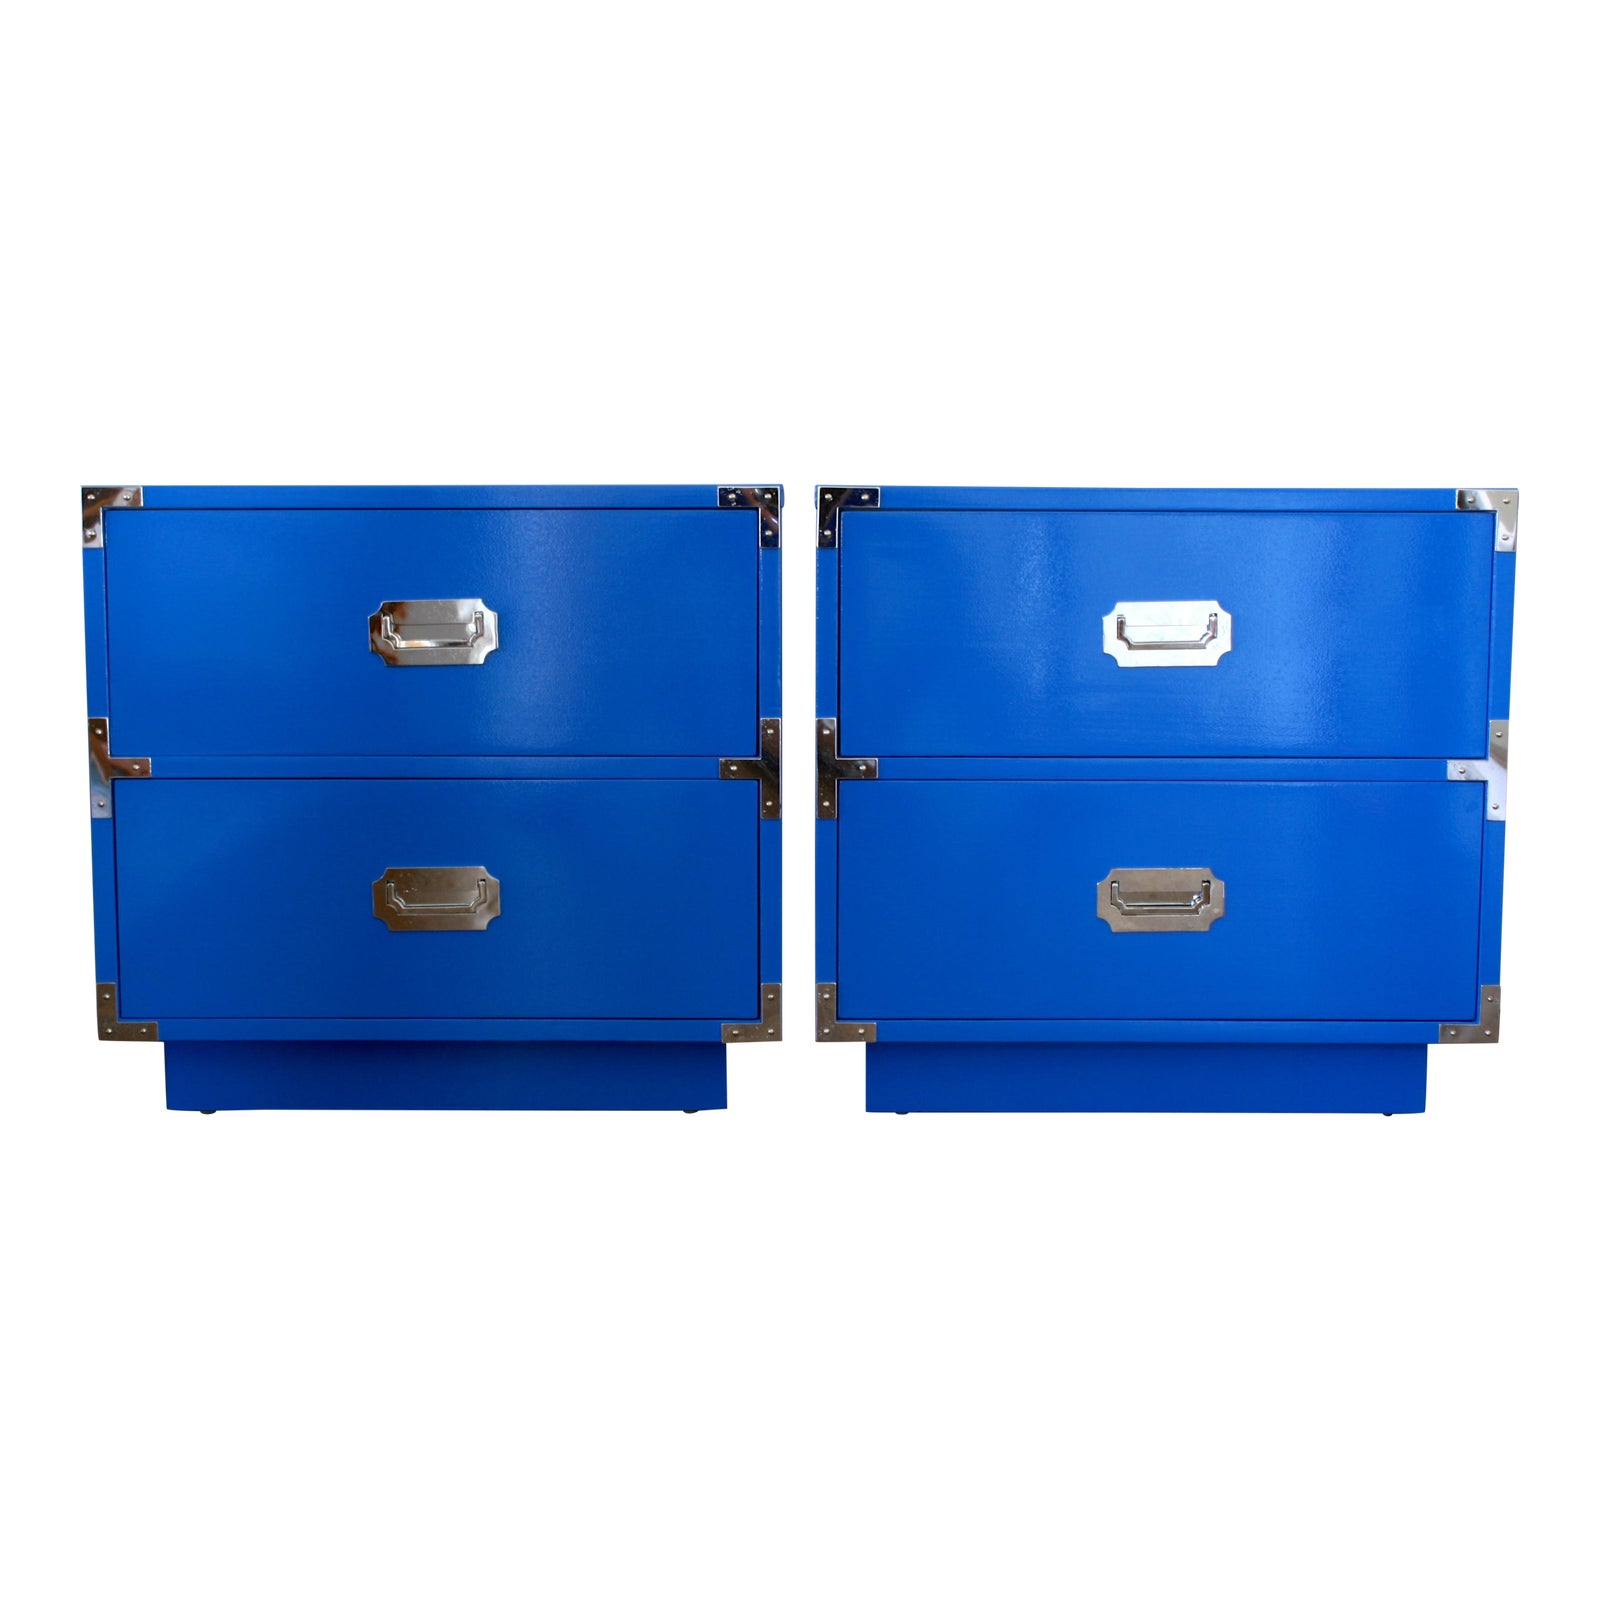 1960s Campaigner Dixie Furniture Company Blue Wood Nightstands A Pair Chairish